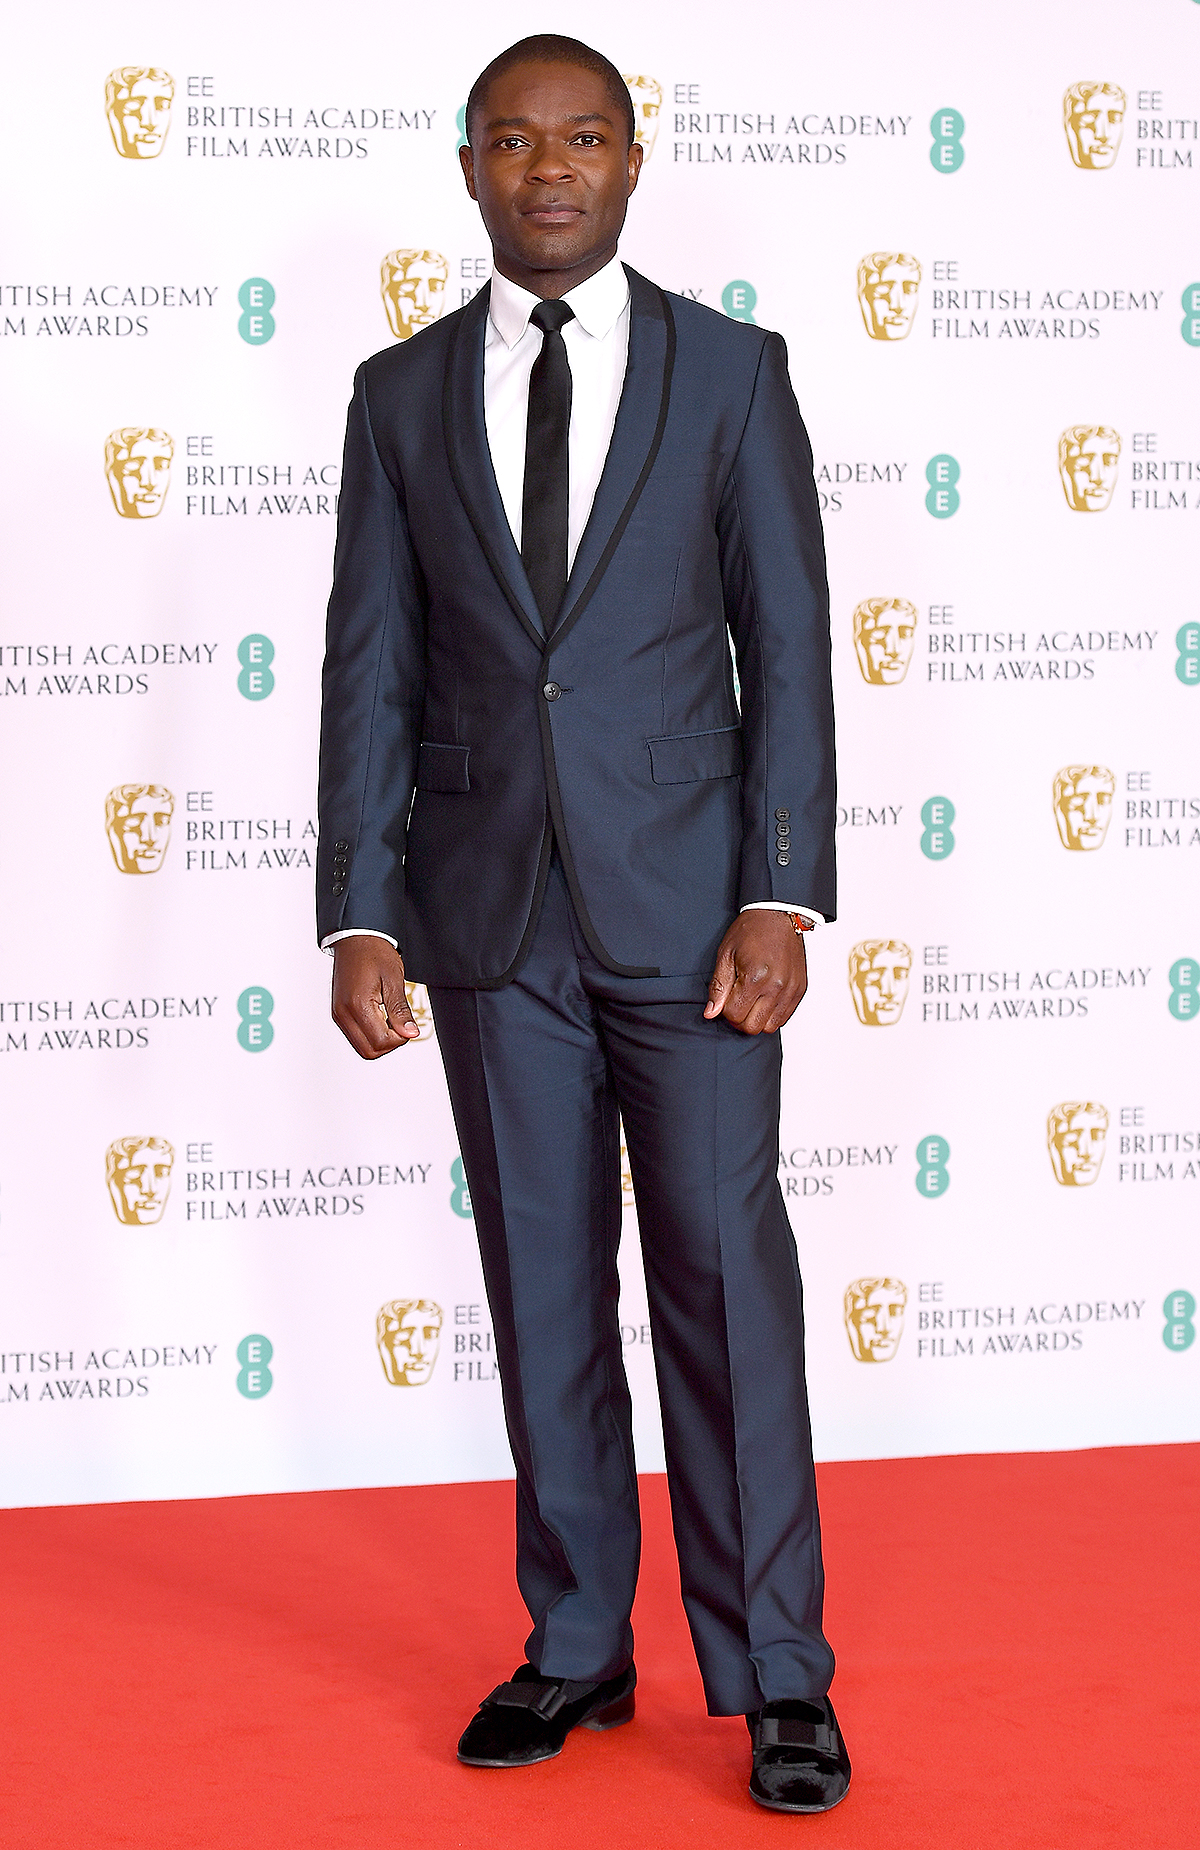 Awards Presenter David Oyelowo attends the EE British Academy Film Awards 2021 at the Royal Albert Hall on April 11, 2021 in London, England.